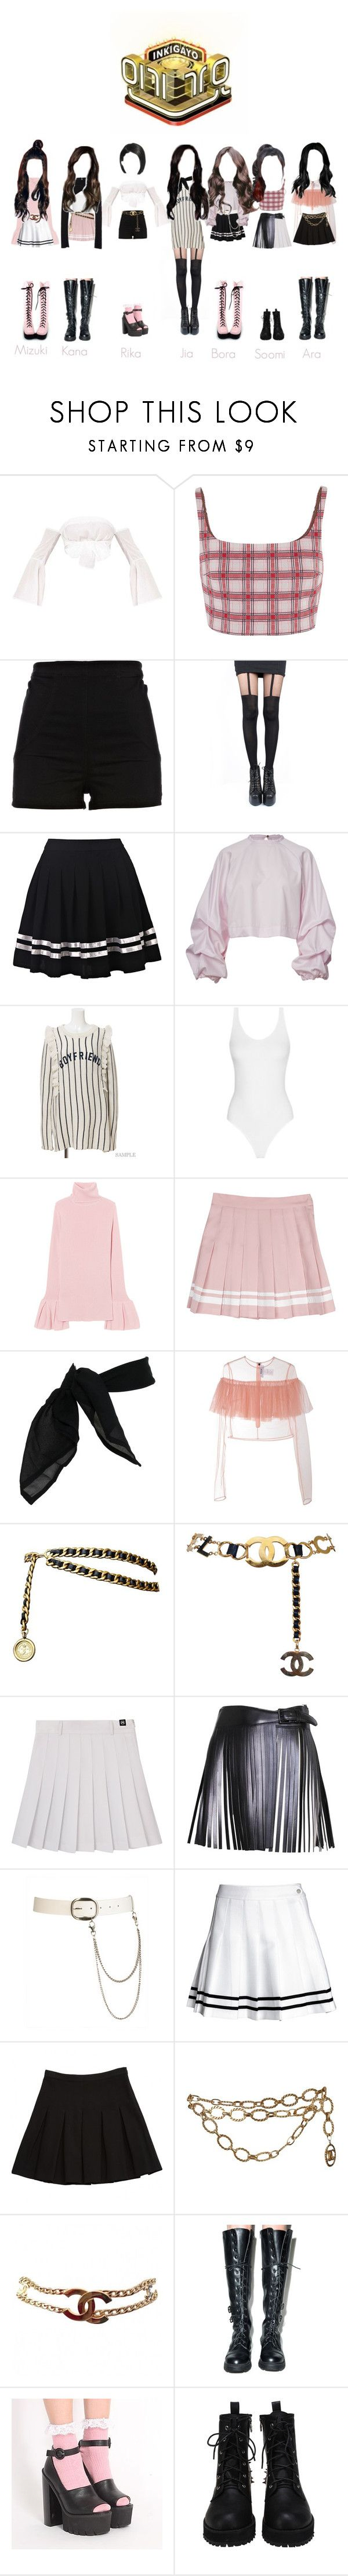 """Inkigayo // Hush"" by pretty-evil-girls ❤ liked on Polyvore featuring Prada, River Island, Pretty Polly, TC Fine Intimates, MSGM, Chanel, Alaïa, Wet Seal, Diane Von Furstenberg and Wild Rose"